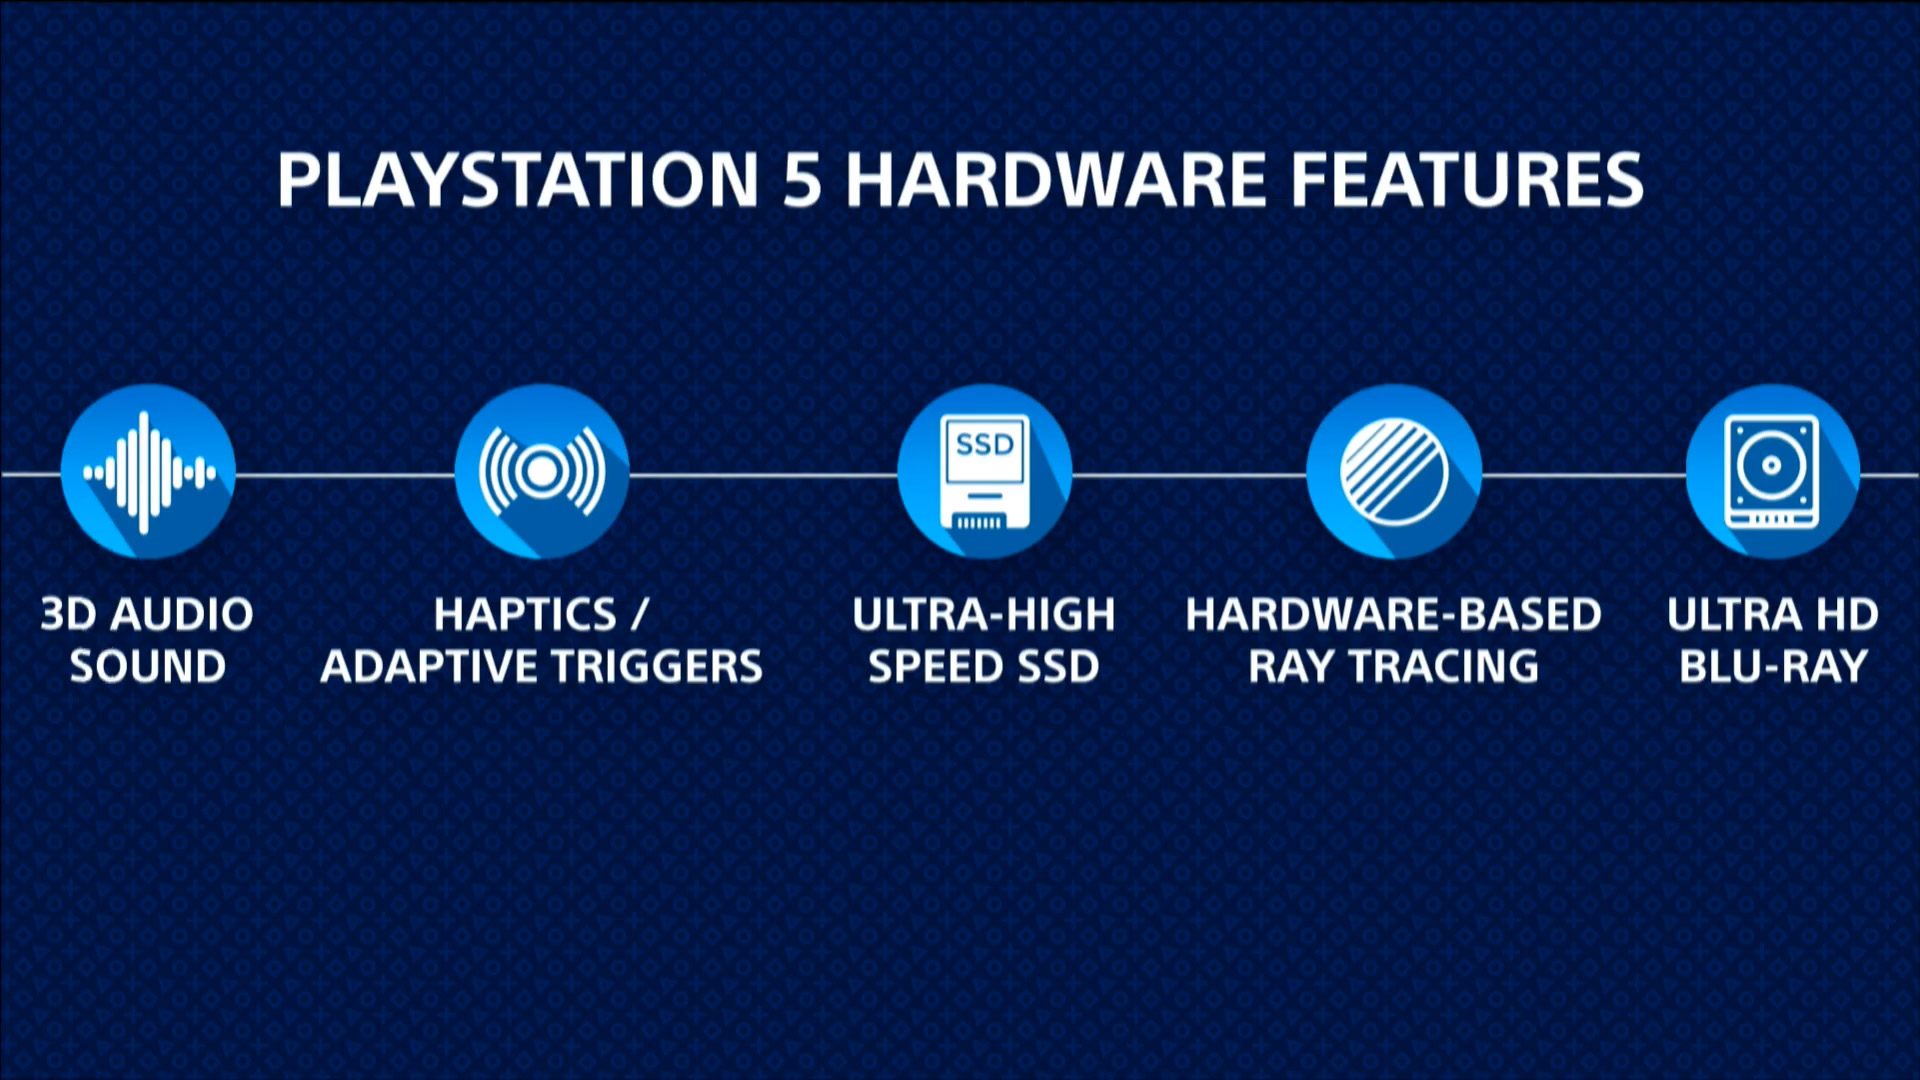 PlayStation 5 hardware features